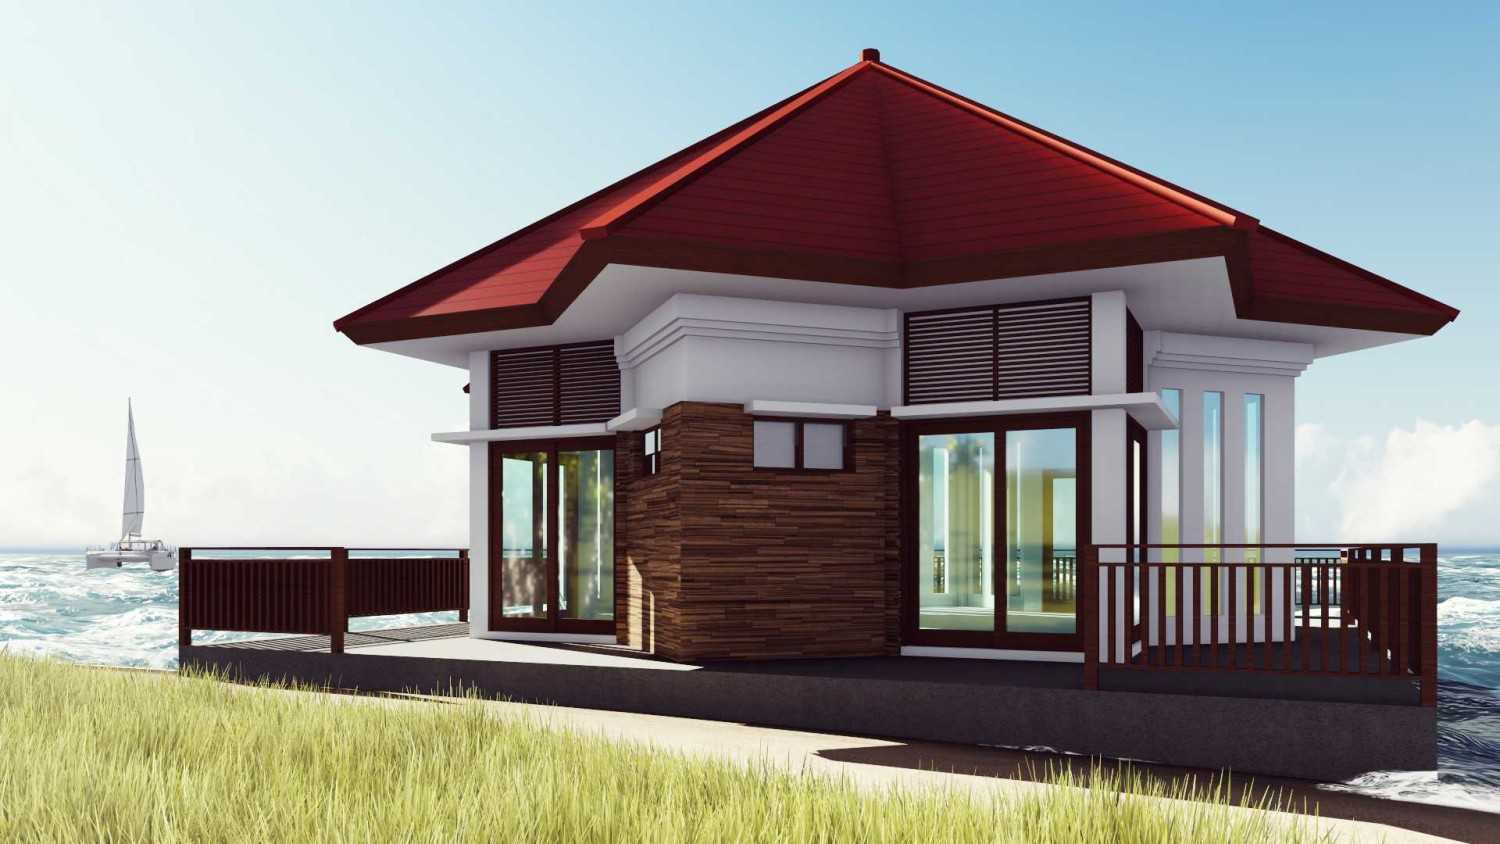 Mannor Architect di Gorontalo